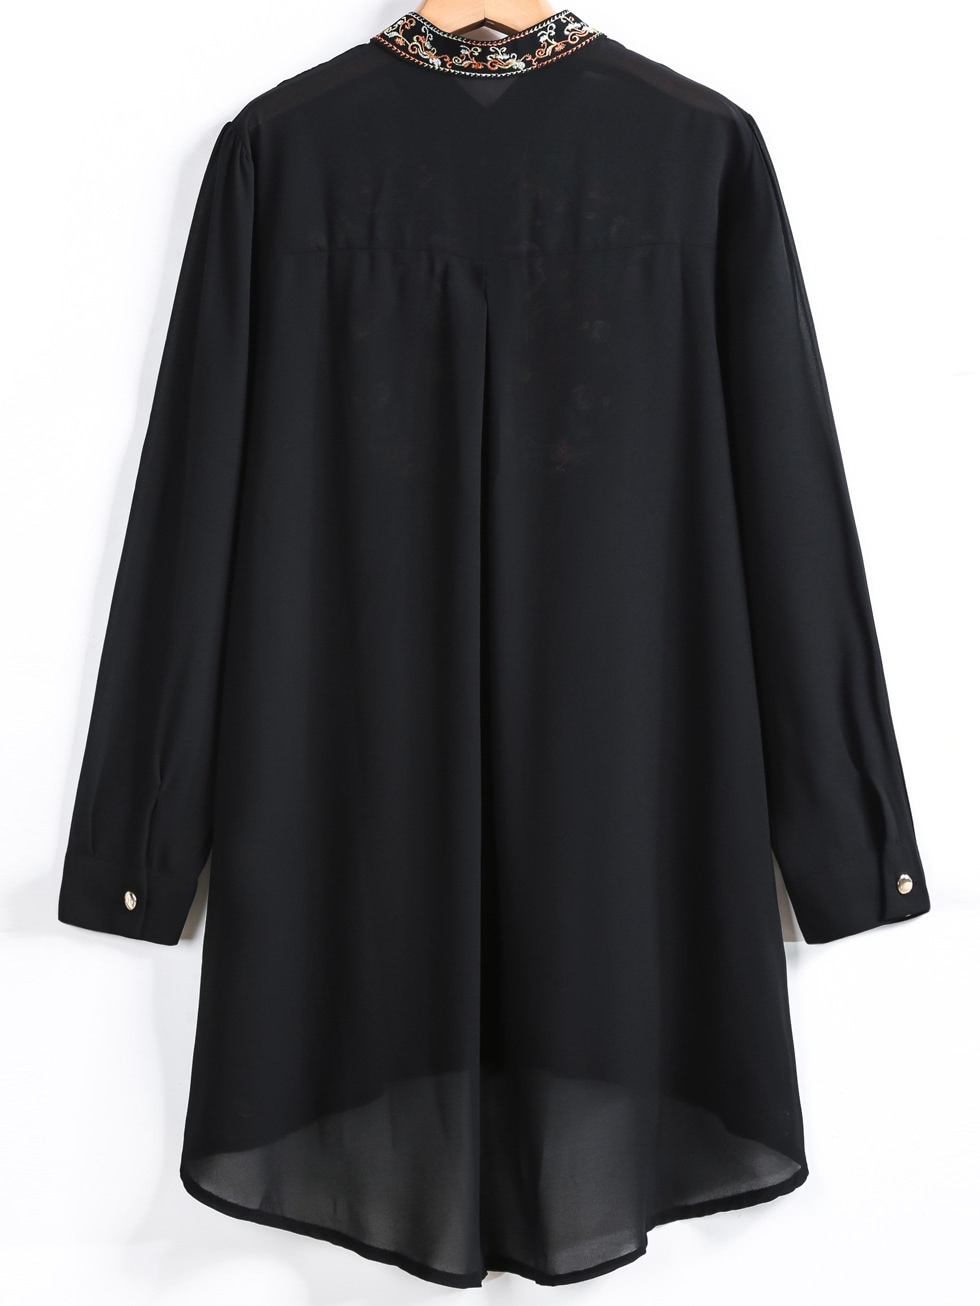 Black Long Sleeve Embroidered Dipped Hem Blouse DKNLPY